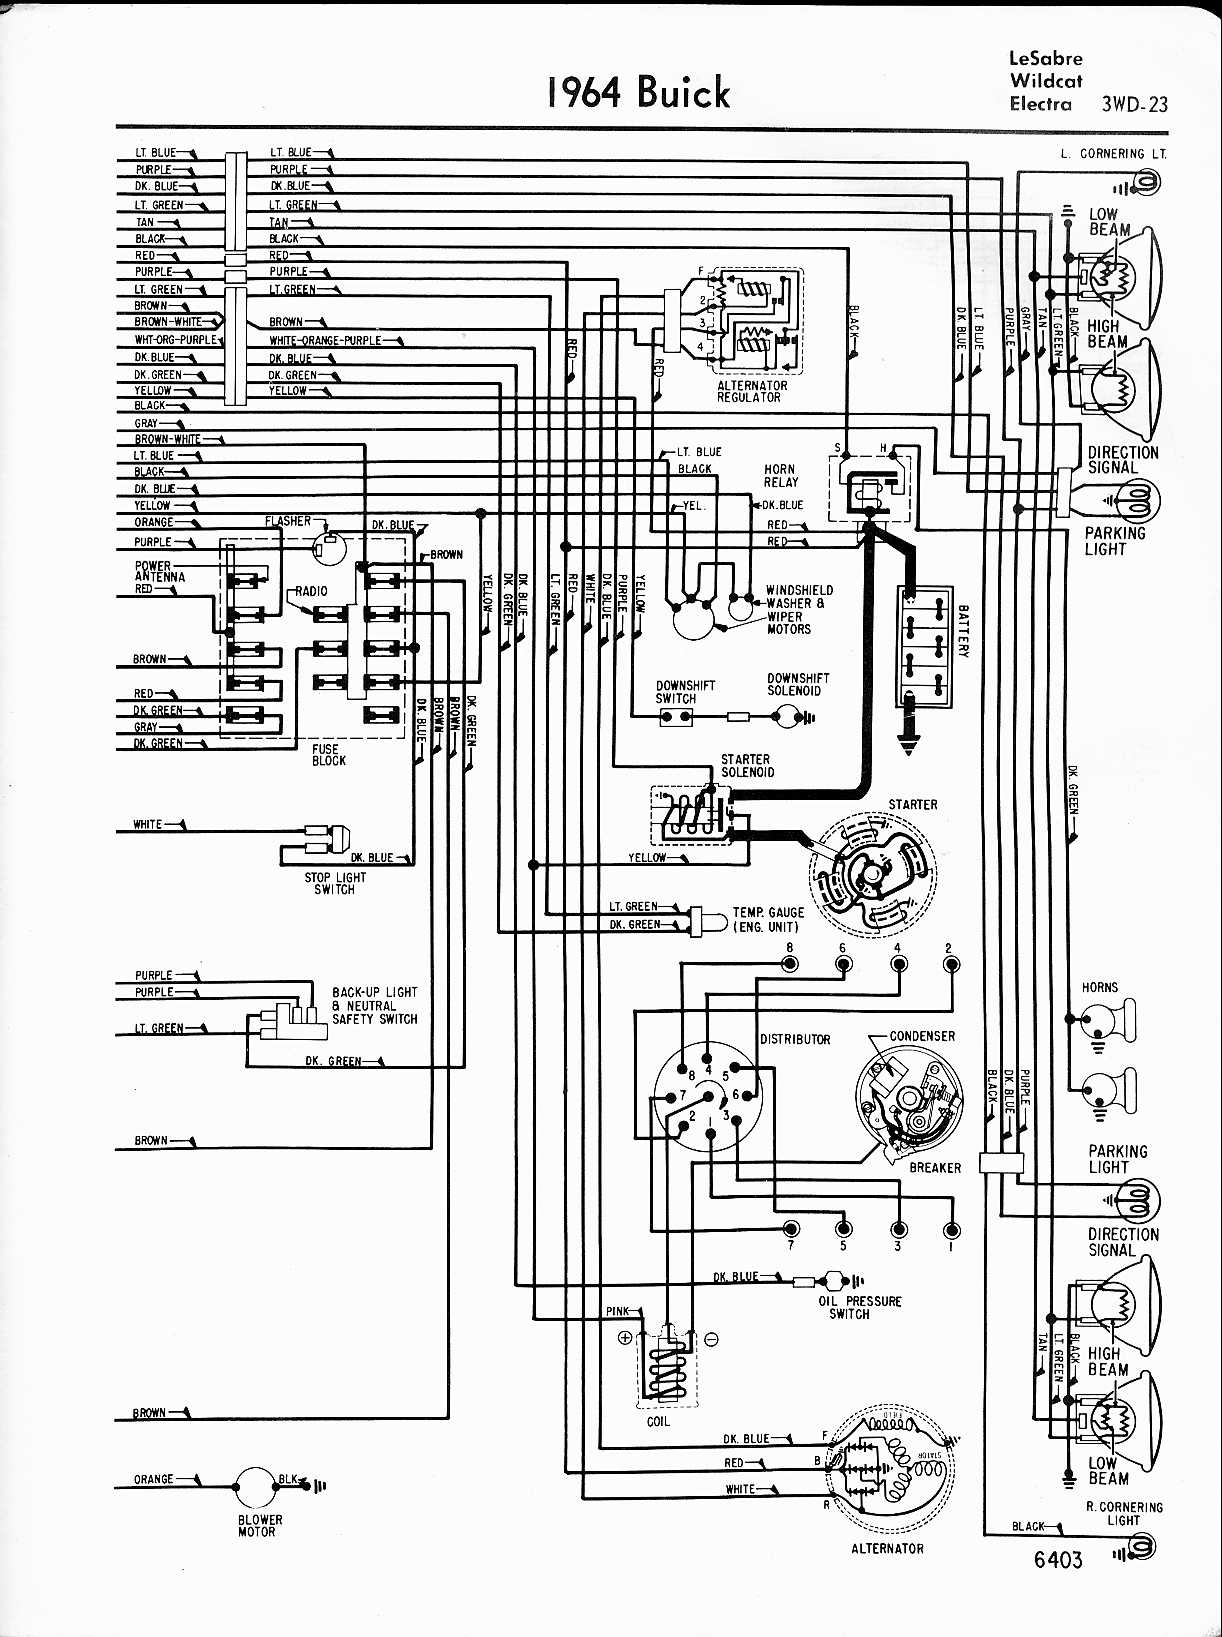 Marvelous Alternator Wiring Diagram 1957 Online Wiring Diagram Wiring Cloud Hemtshollocom